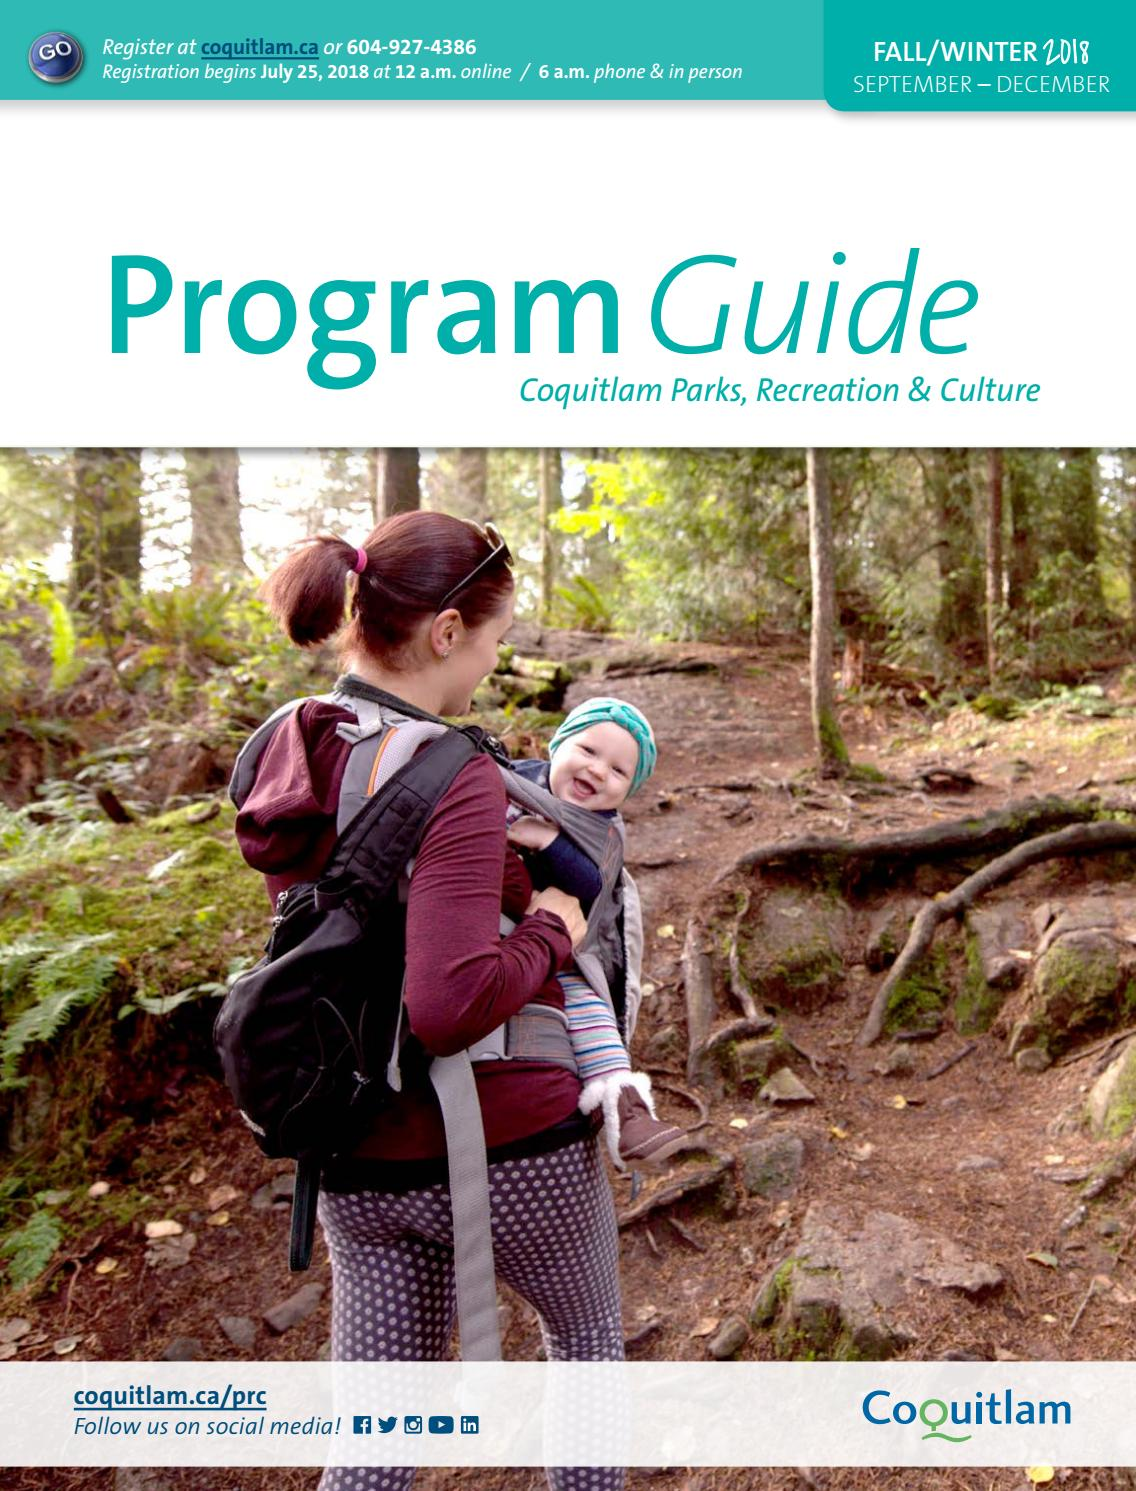 7d30883f193b8 Fall/Winter 2018 Program Guide by City of Coquitlam - issuu